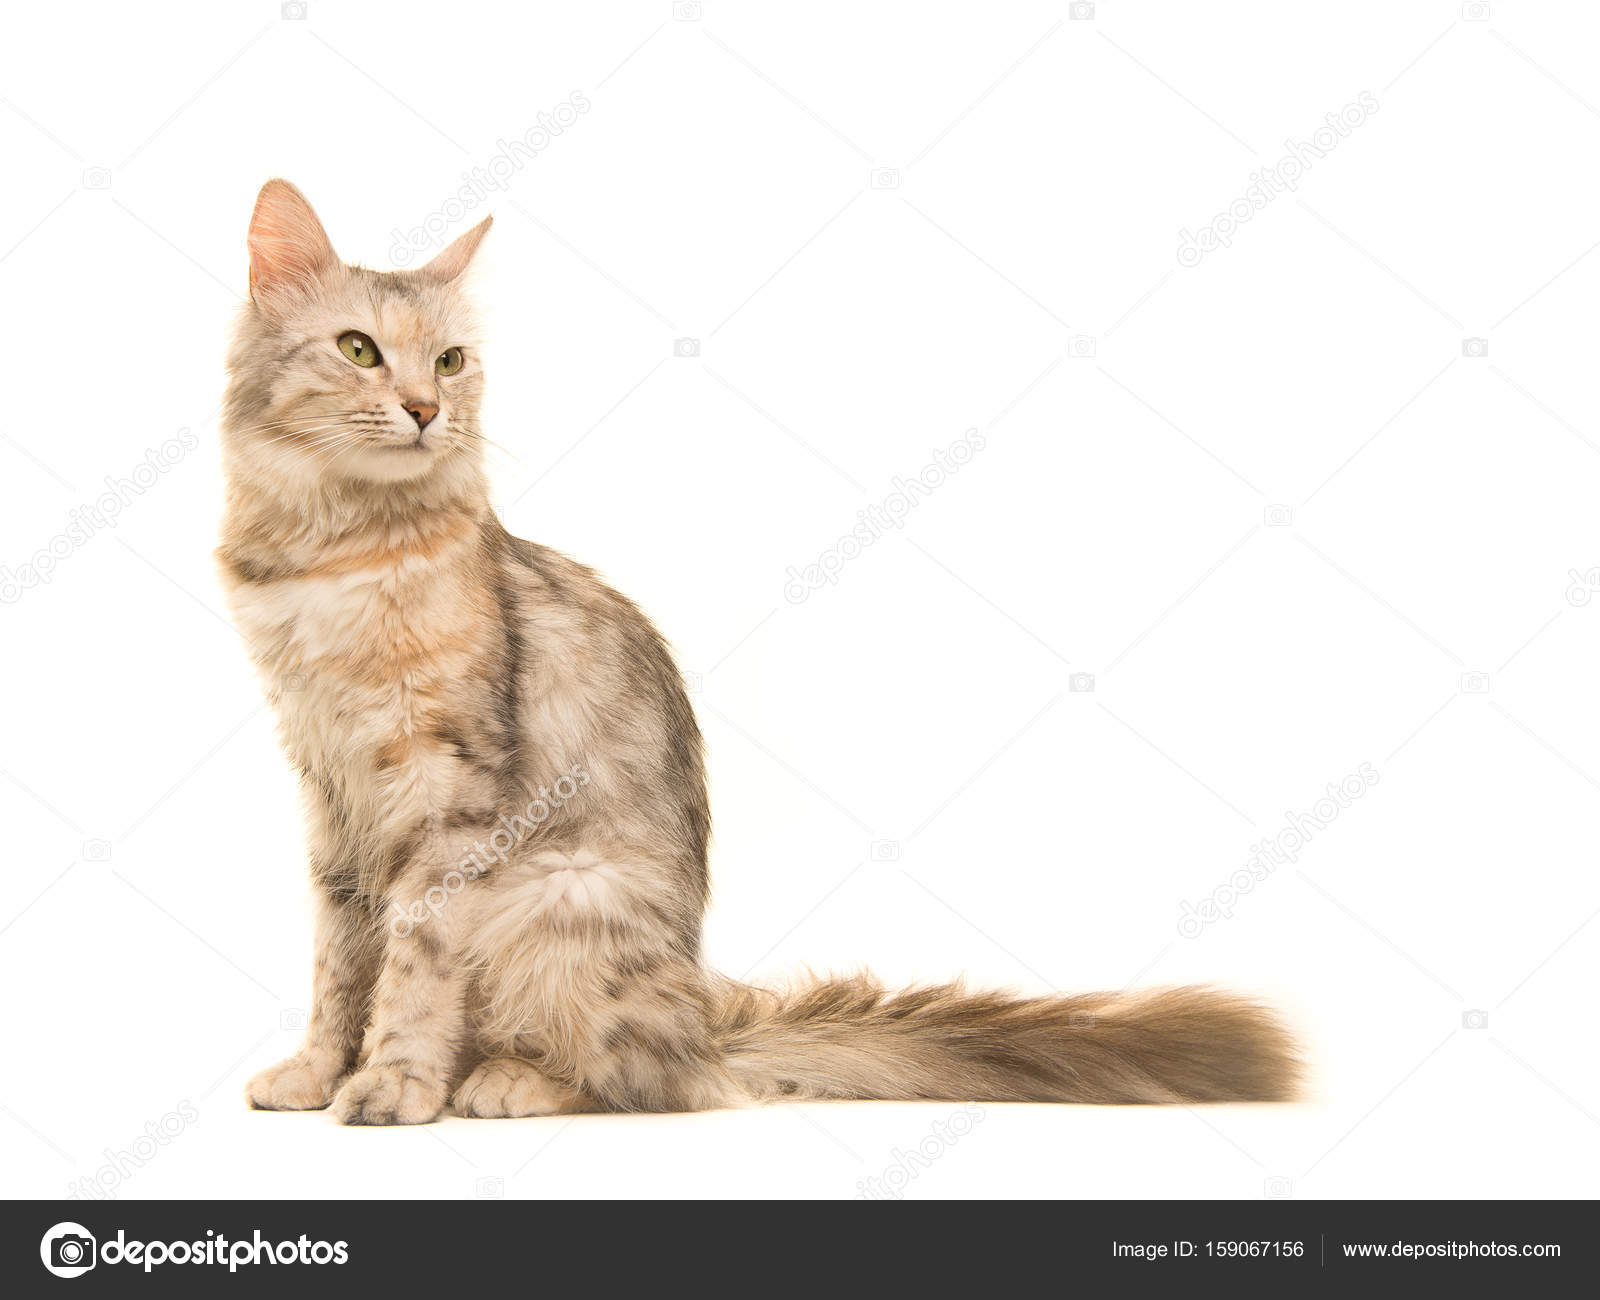 Tabby Turkish Angora Cat Sitting Looking Back To The Right Seen From